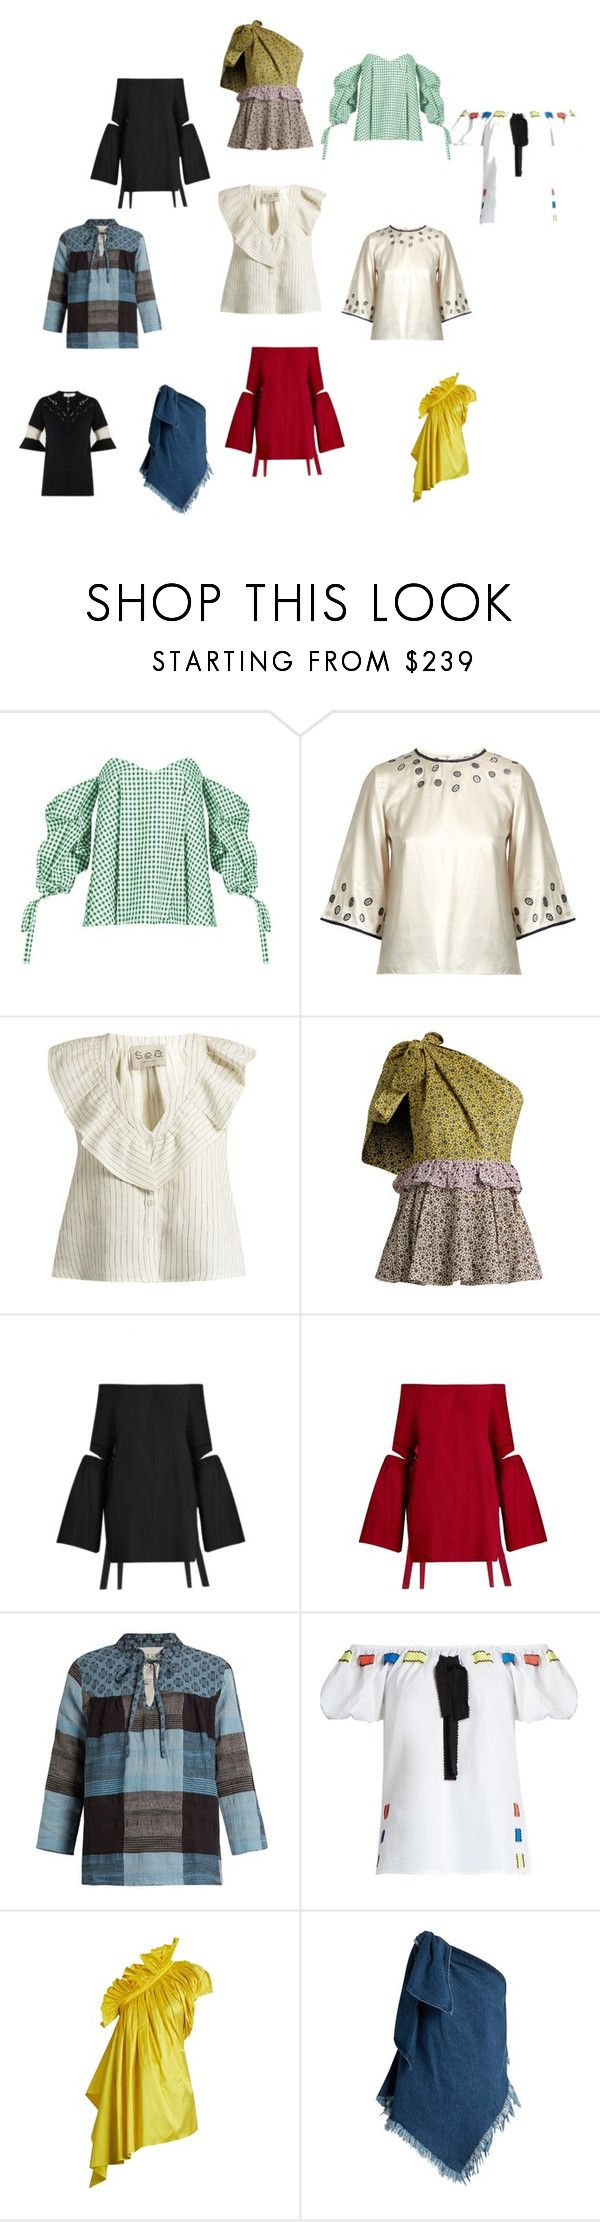 """""""tipsy Topsy"""" by ramakumari on Polyvore featuring Caroline Constas, Jupe By Jackie, Sea, New York, Anna October, E L L E R Y, ace & jig, Marques'Almeida, Toga and vintage"""